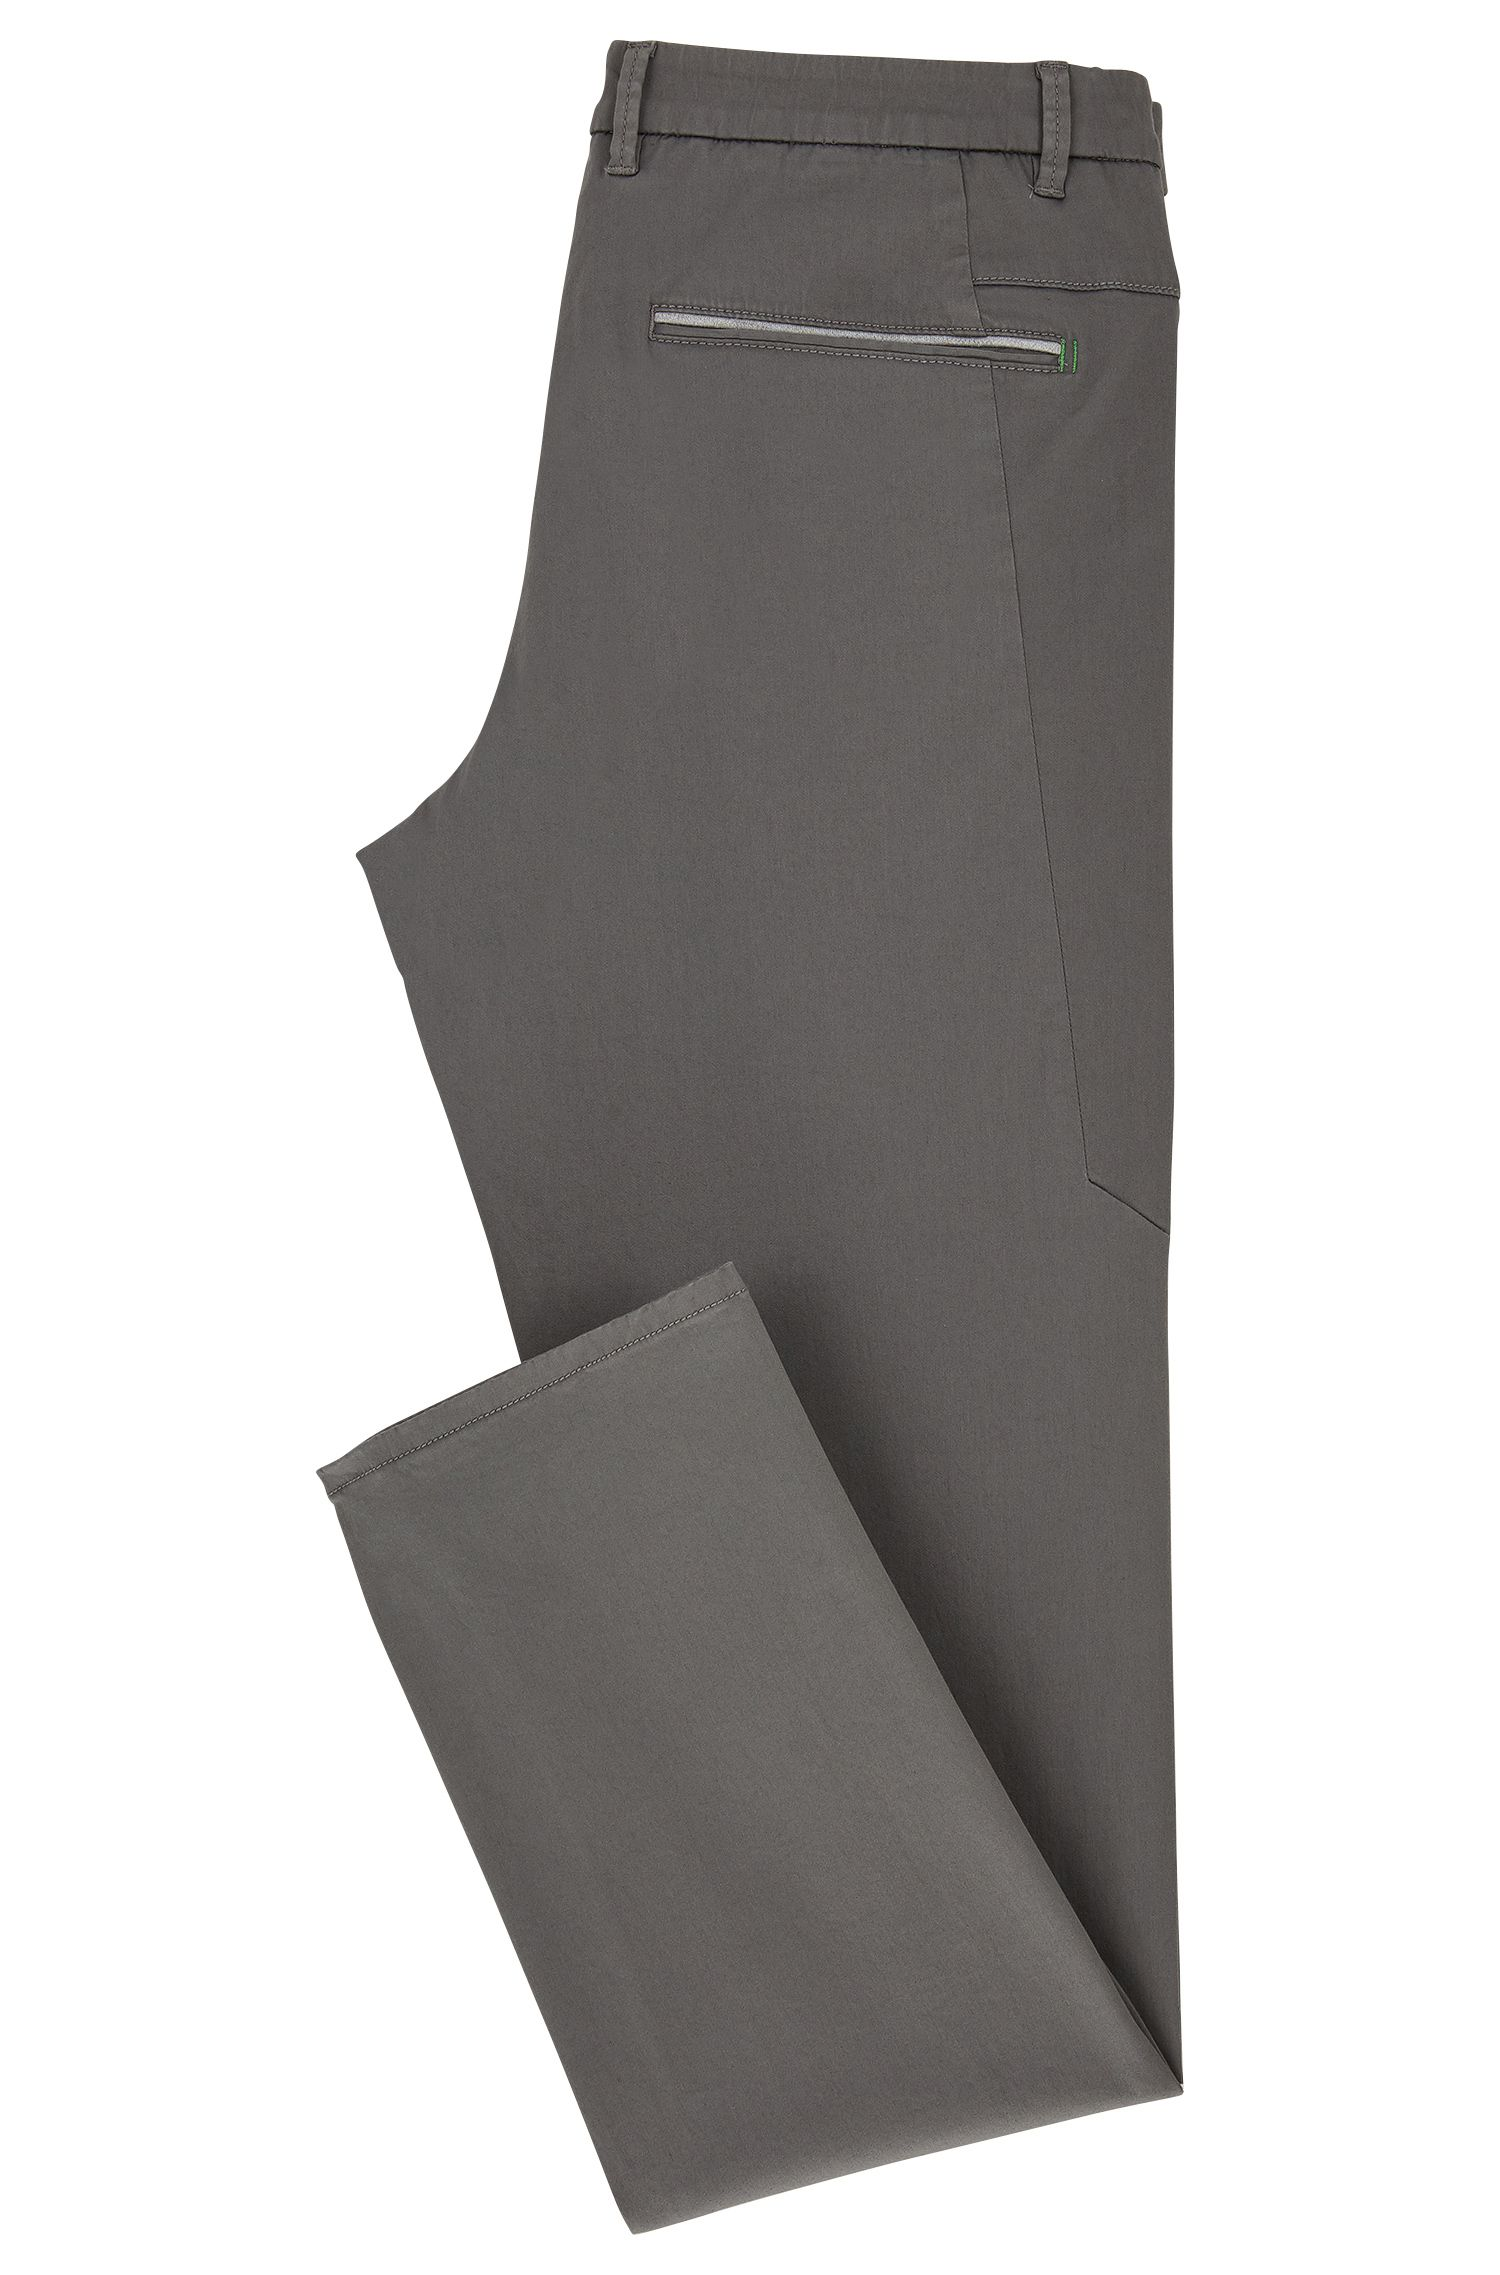 Slim Fit, Stretch Cotton Blend Pants | Leeman W, Grey